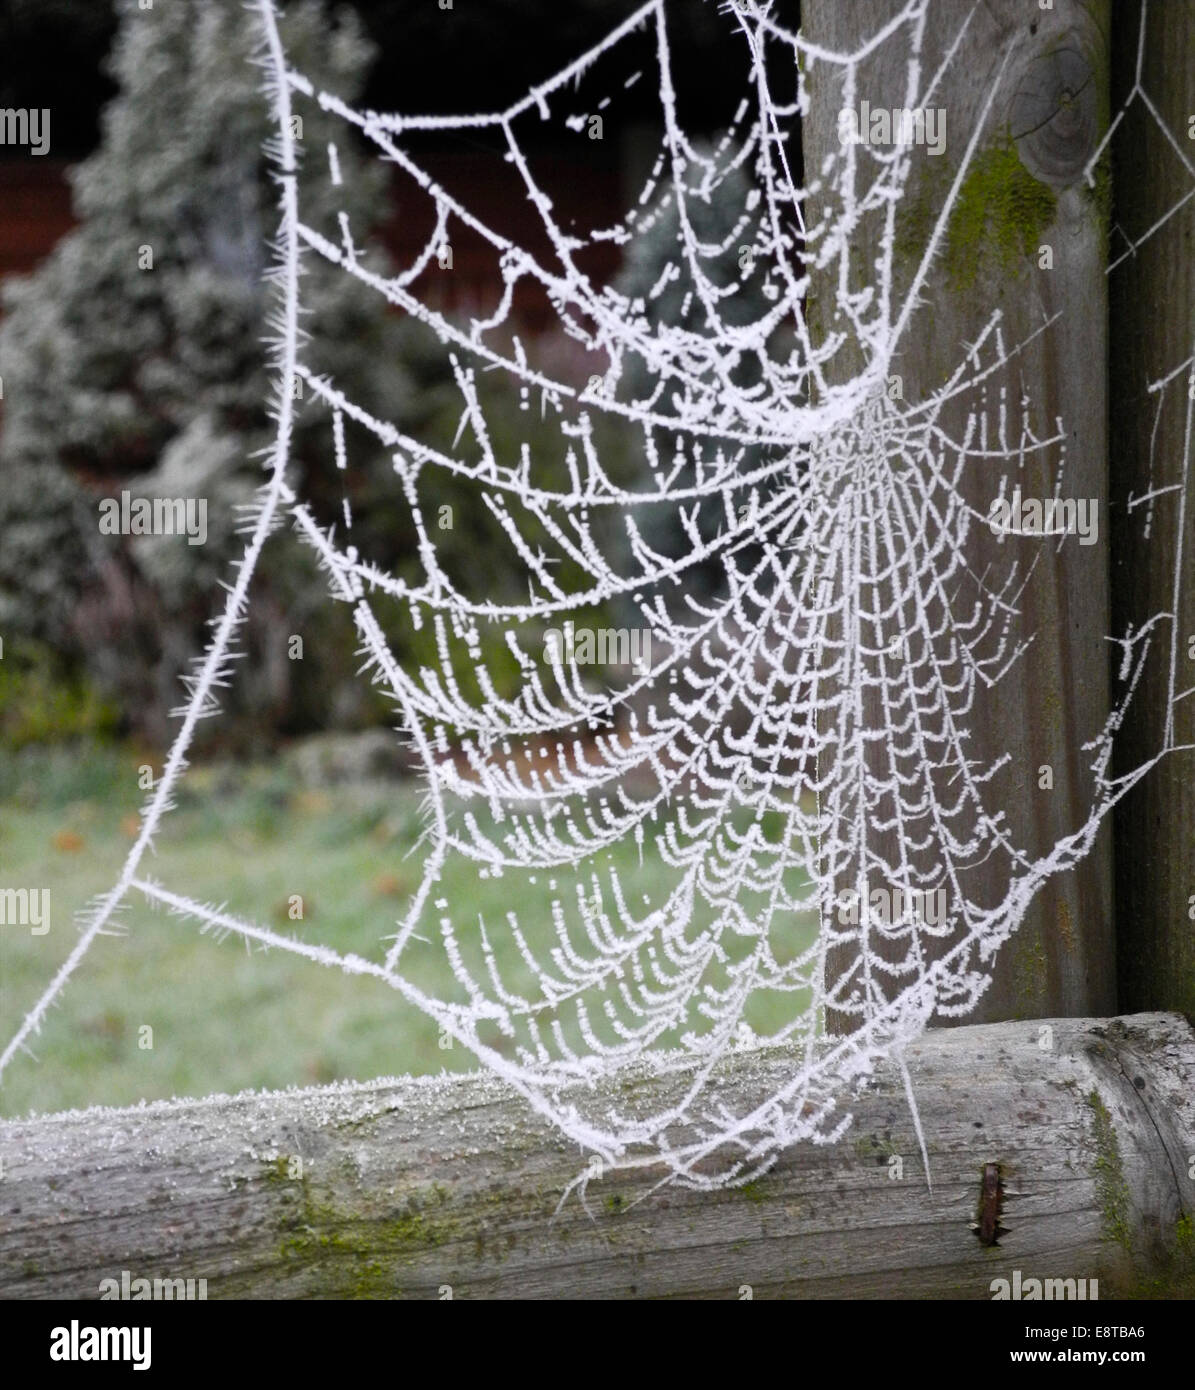 Cobweb cobwebs spiders webs web spider winter frost - Stock Image